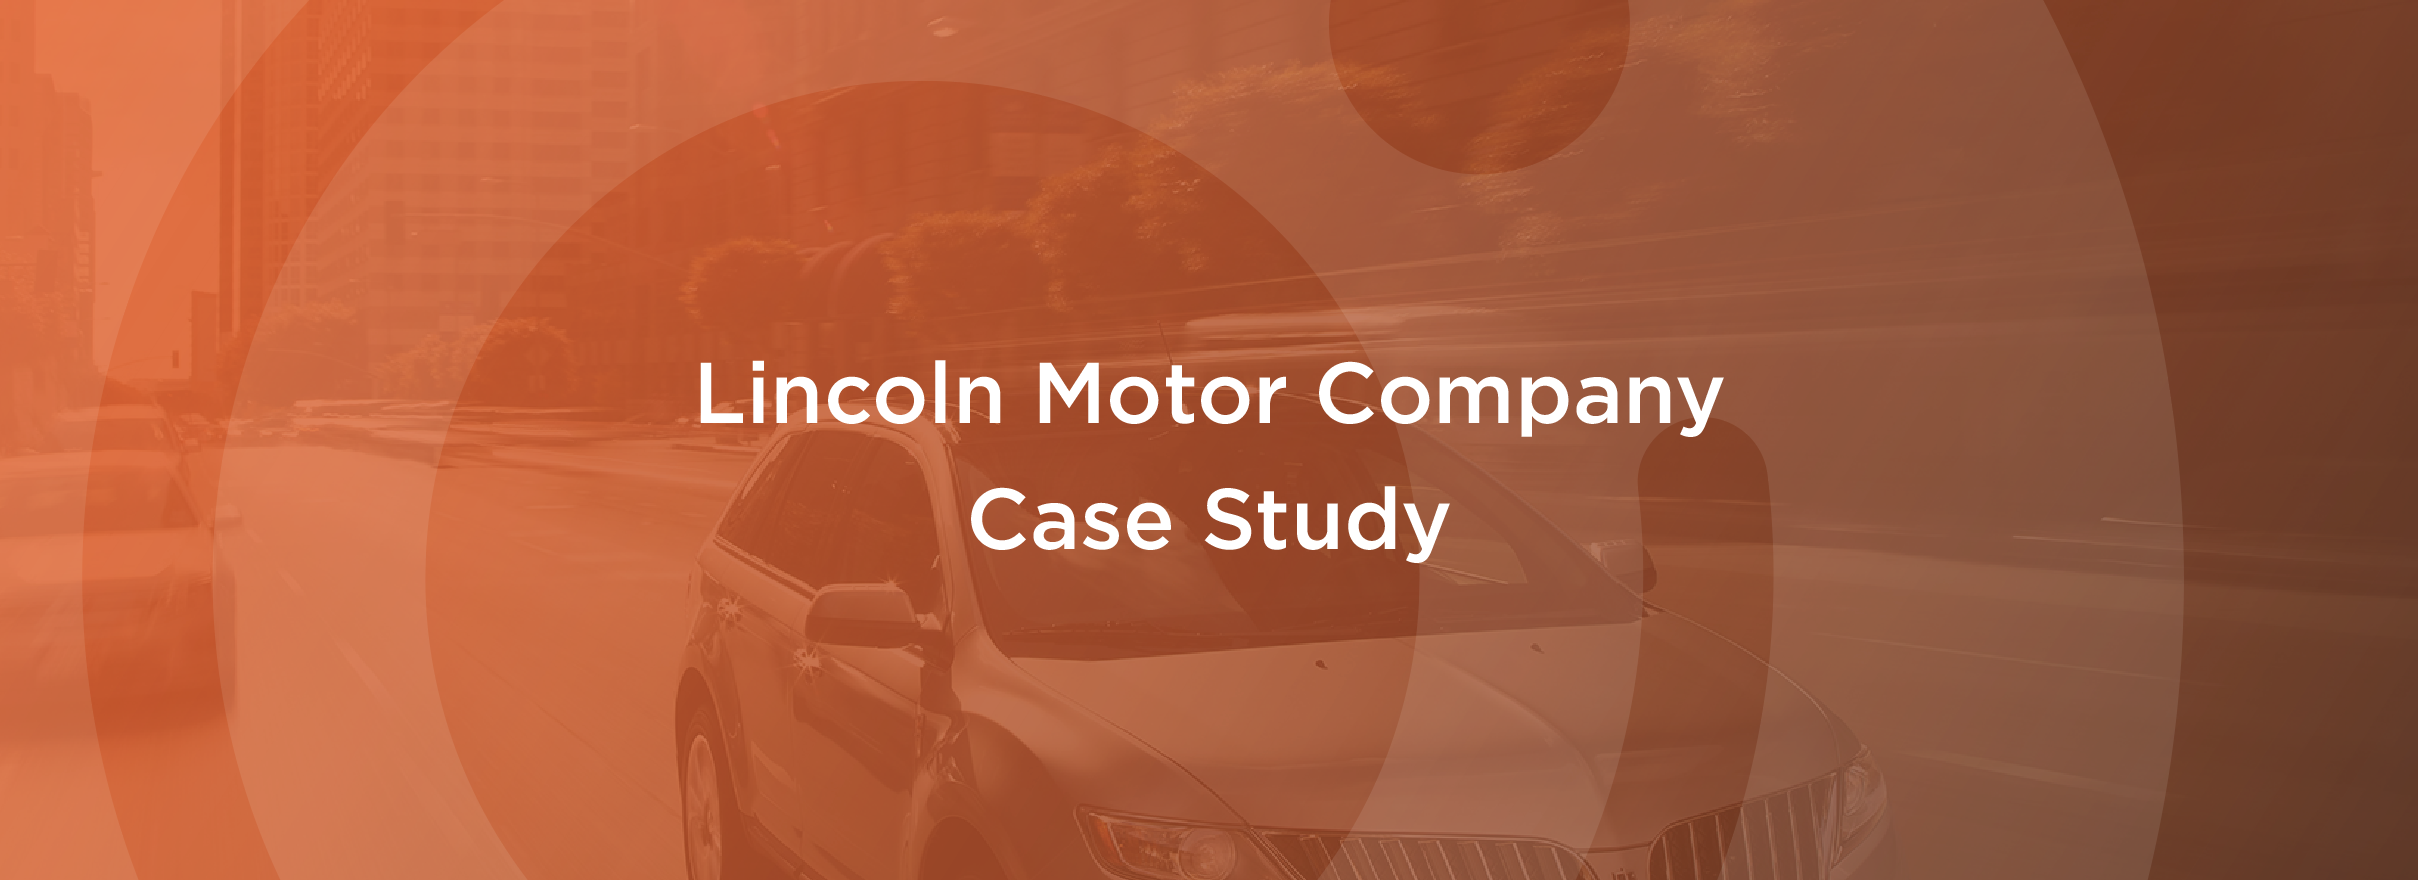 How AI Helped Lincoln Sell More Cars: A Case Study